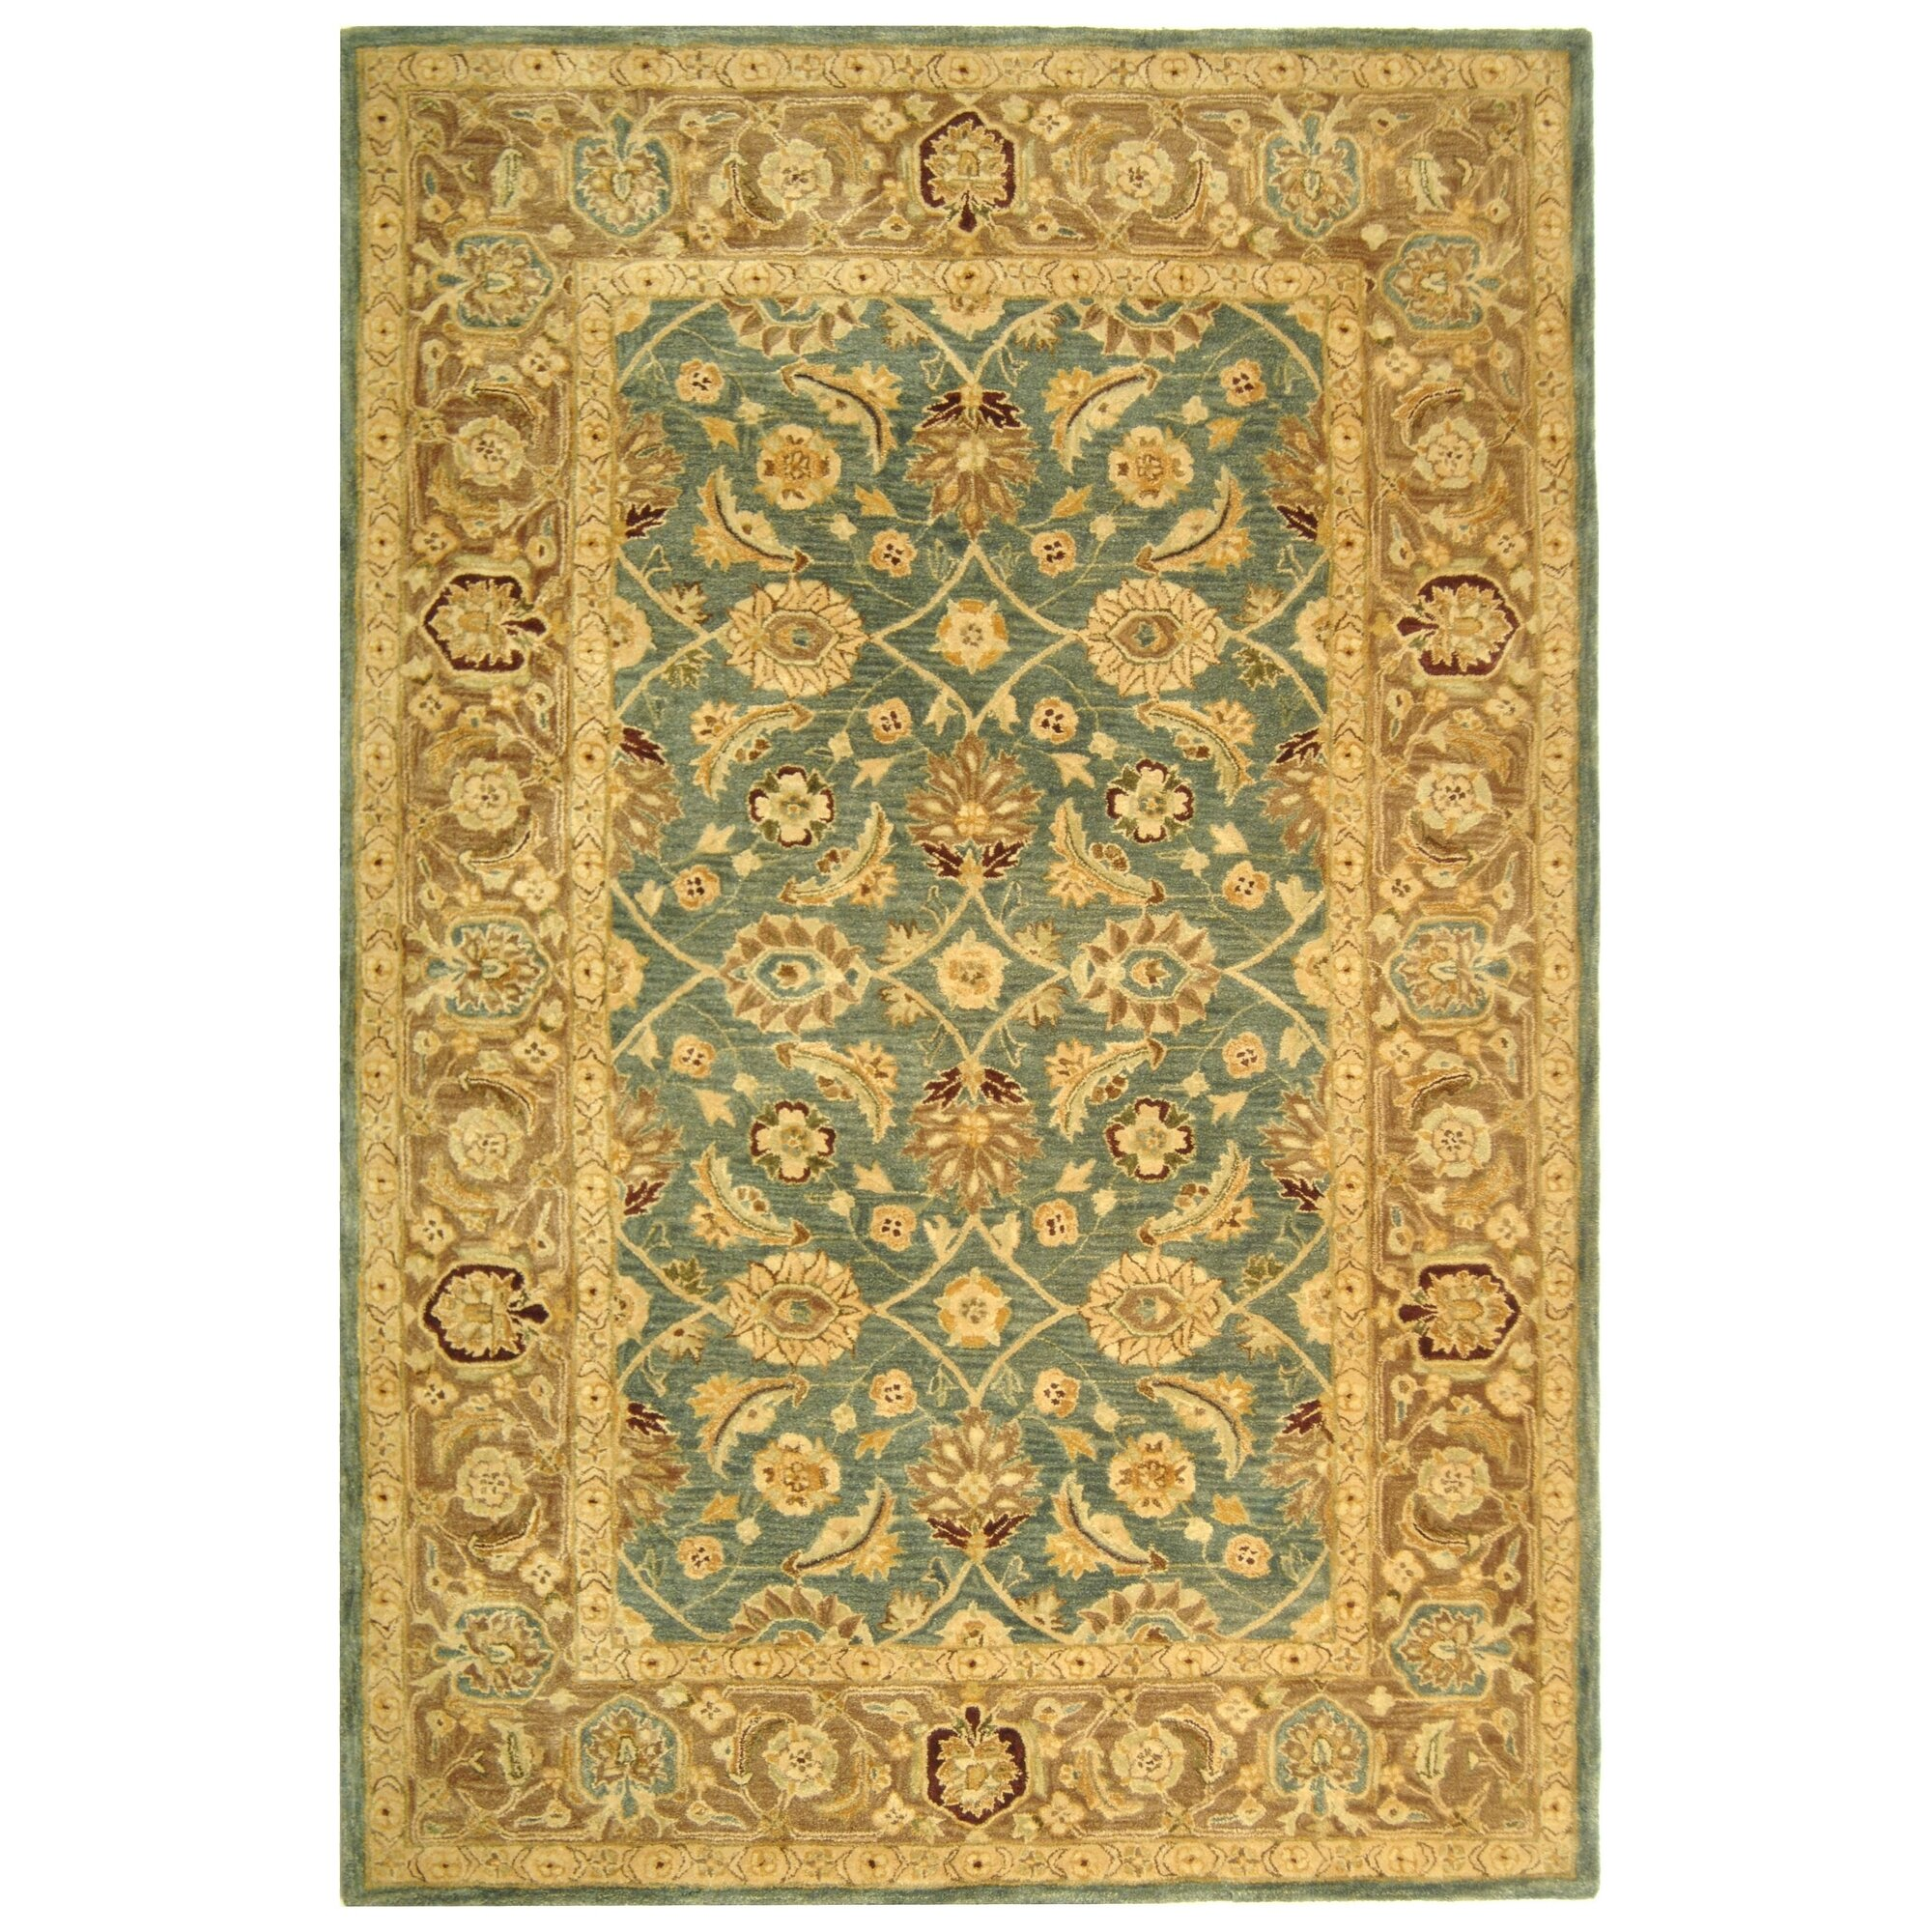 Safavieh Carpet: Safavieh Anatolia Blue / Brown Area Rug & Reviews